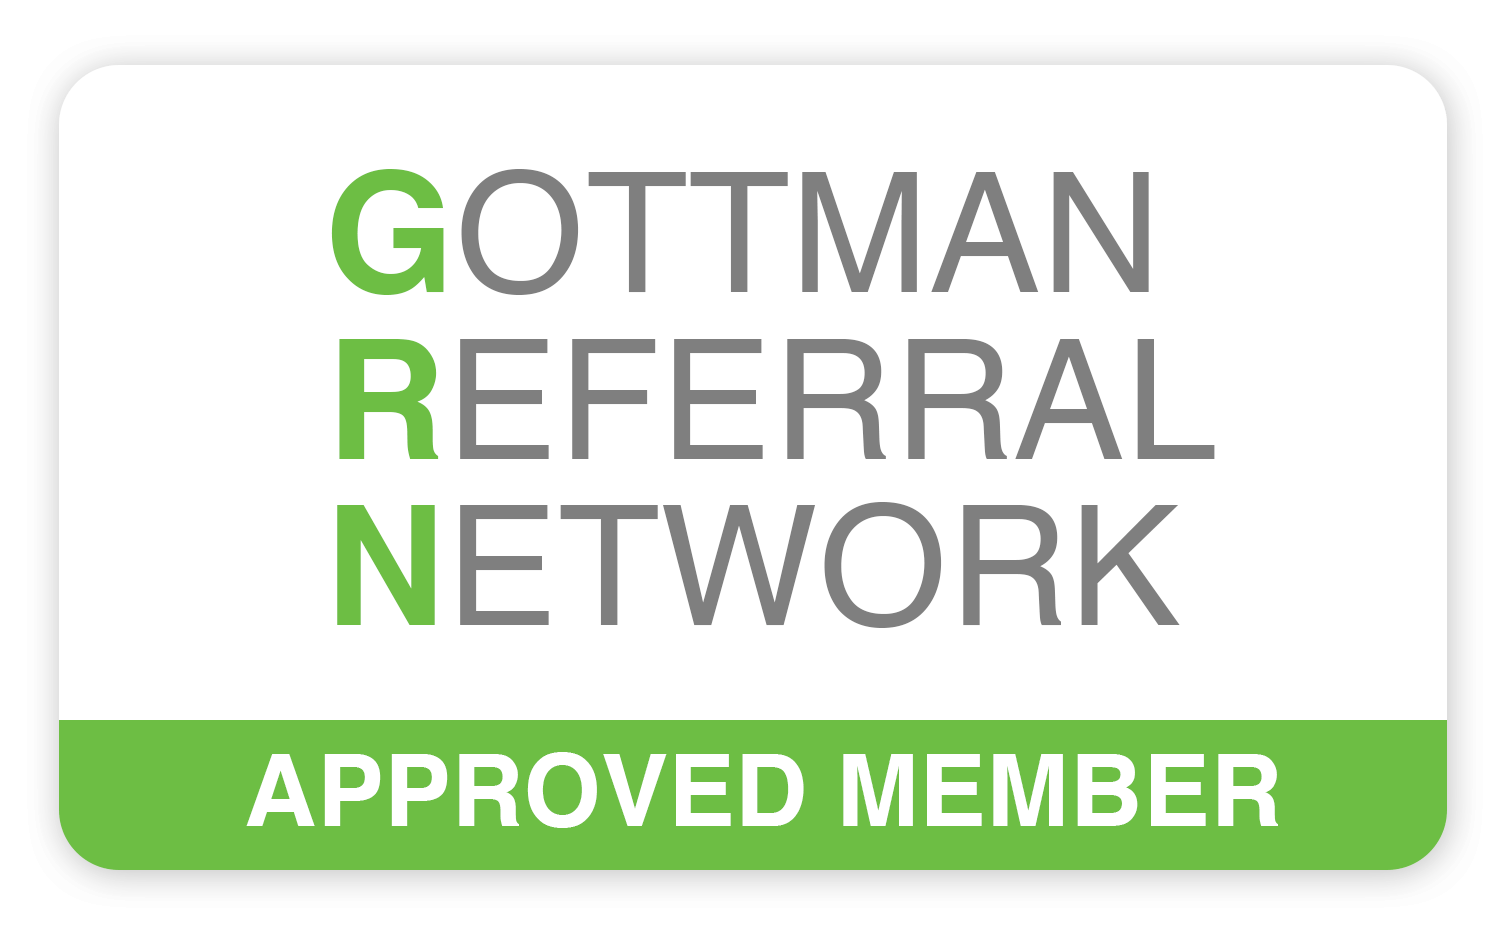 Robin Rosenberg's profile on the Gottman Referral Network